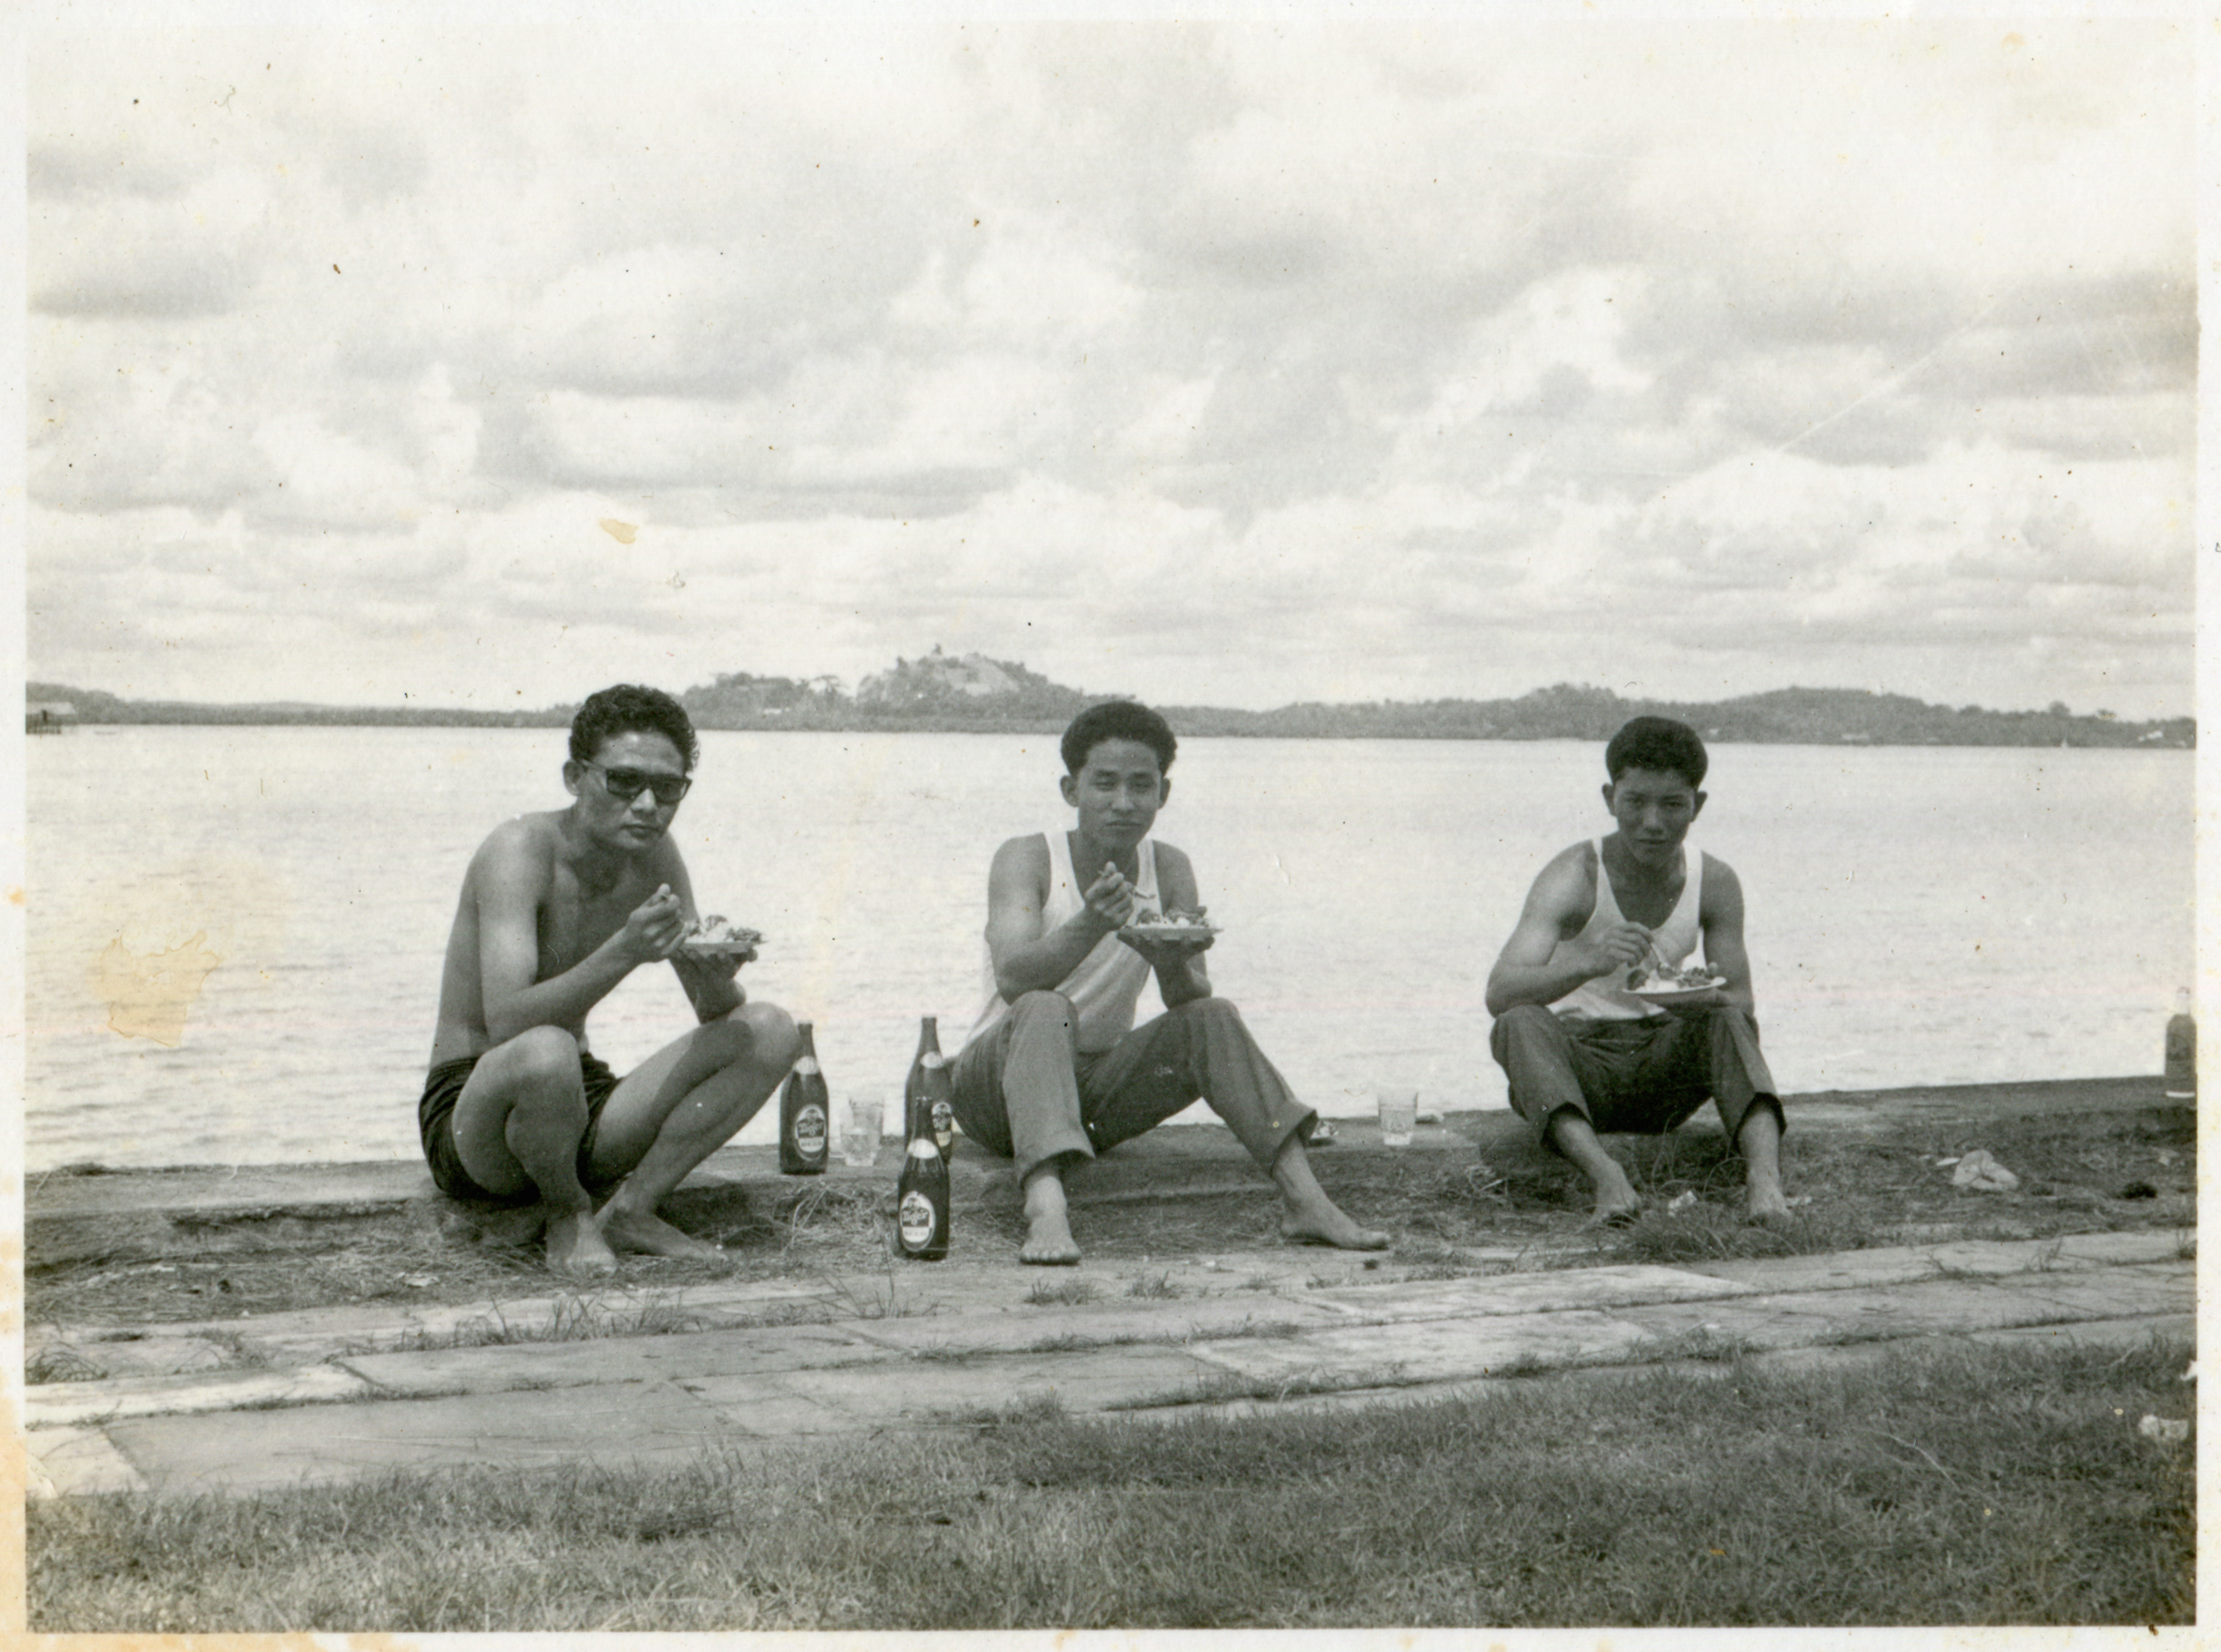 Arun Kumar Tamang (6785) with two other Singapore Gurkhas at Pasir Panjang having a picnic. Date: Unknown. Photo Collection: Aswin Moktan / SGPM.